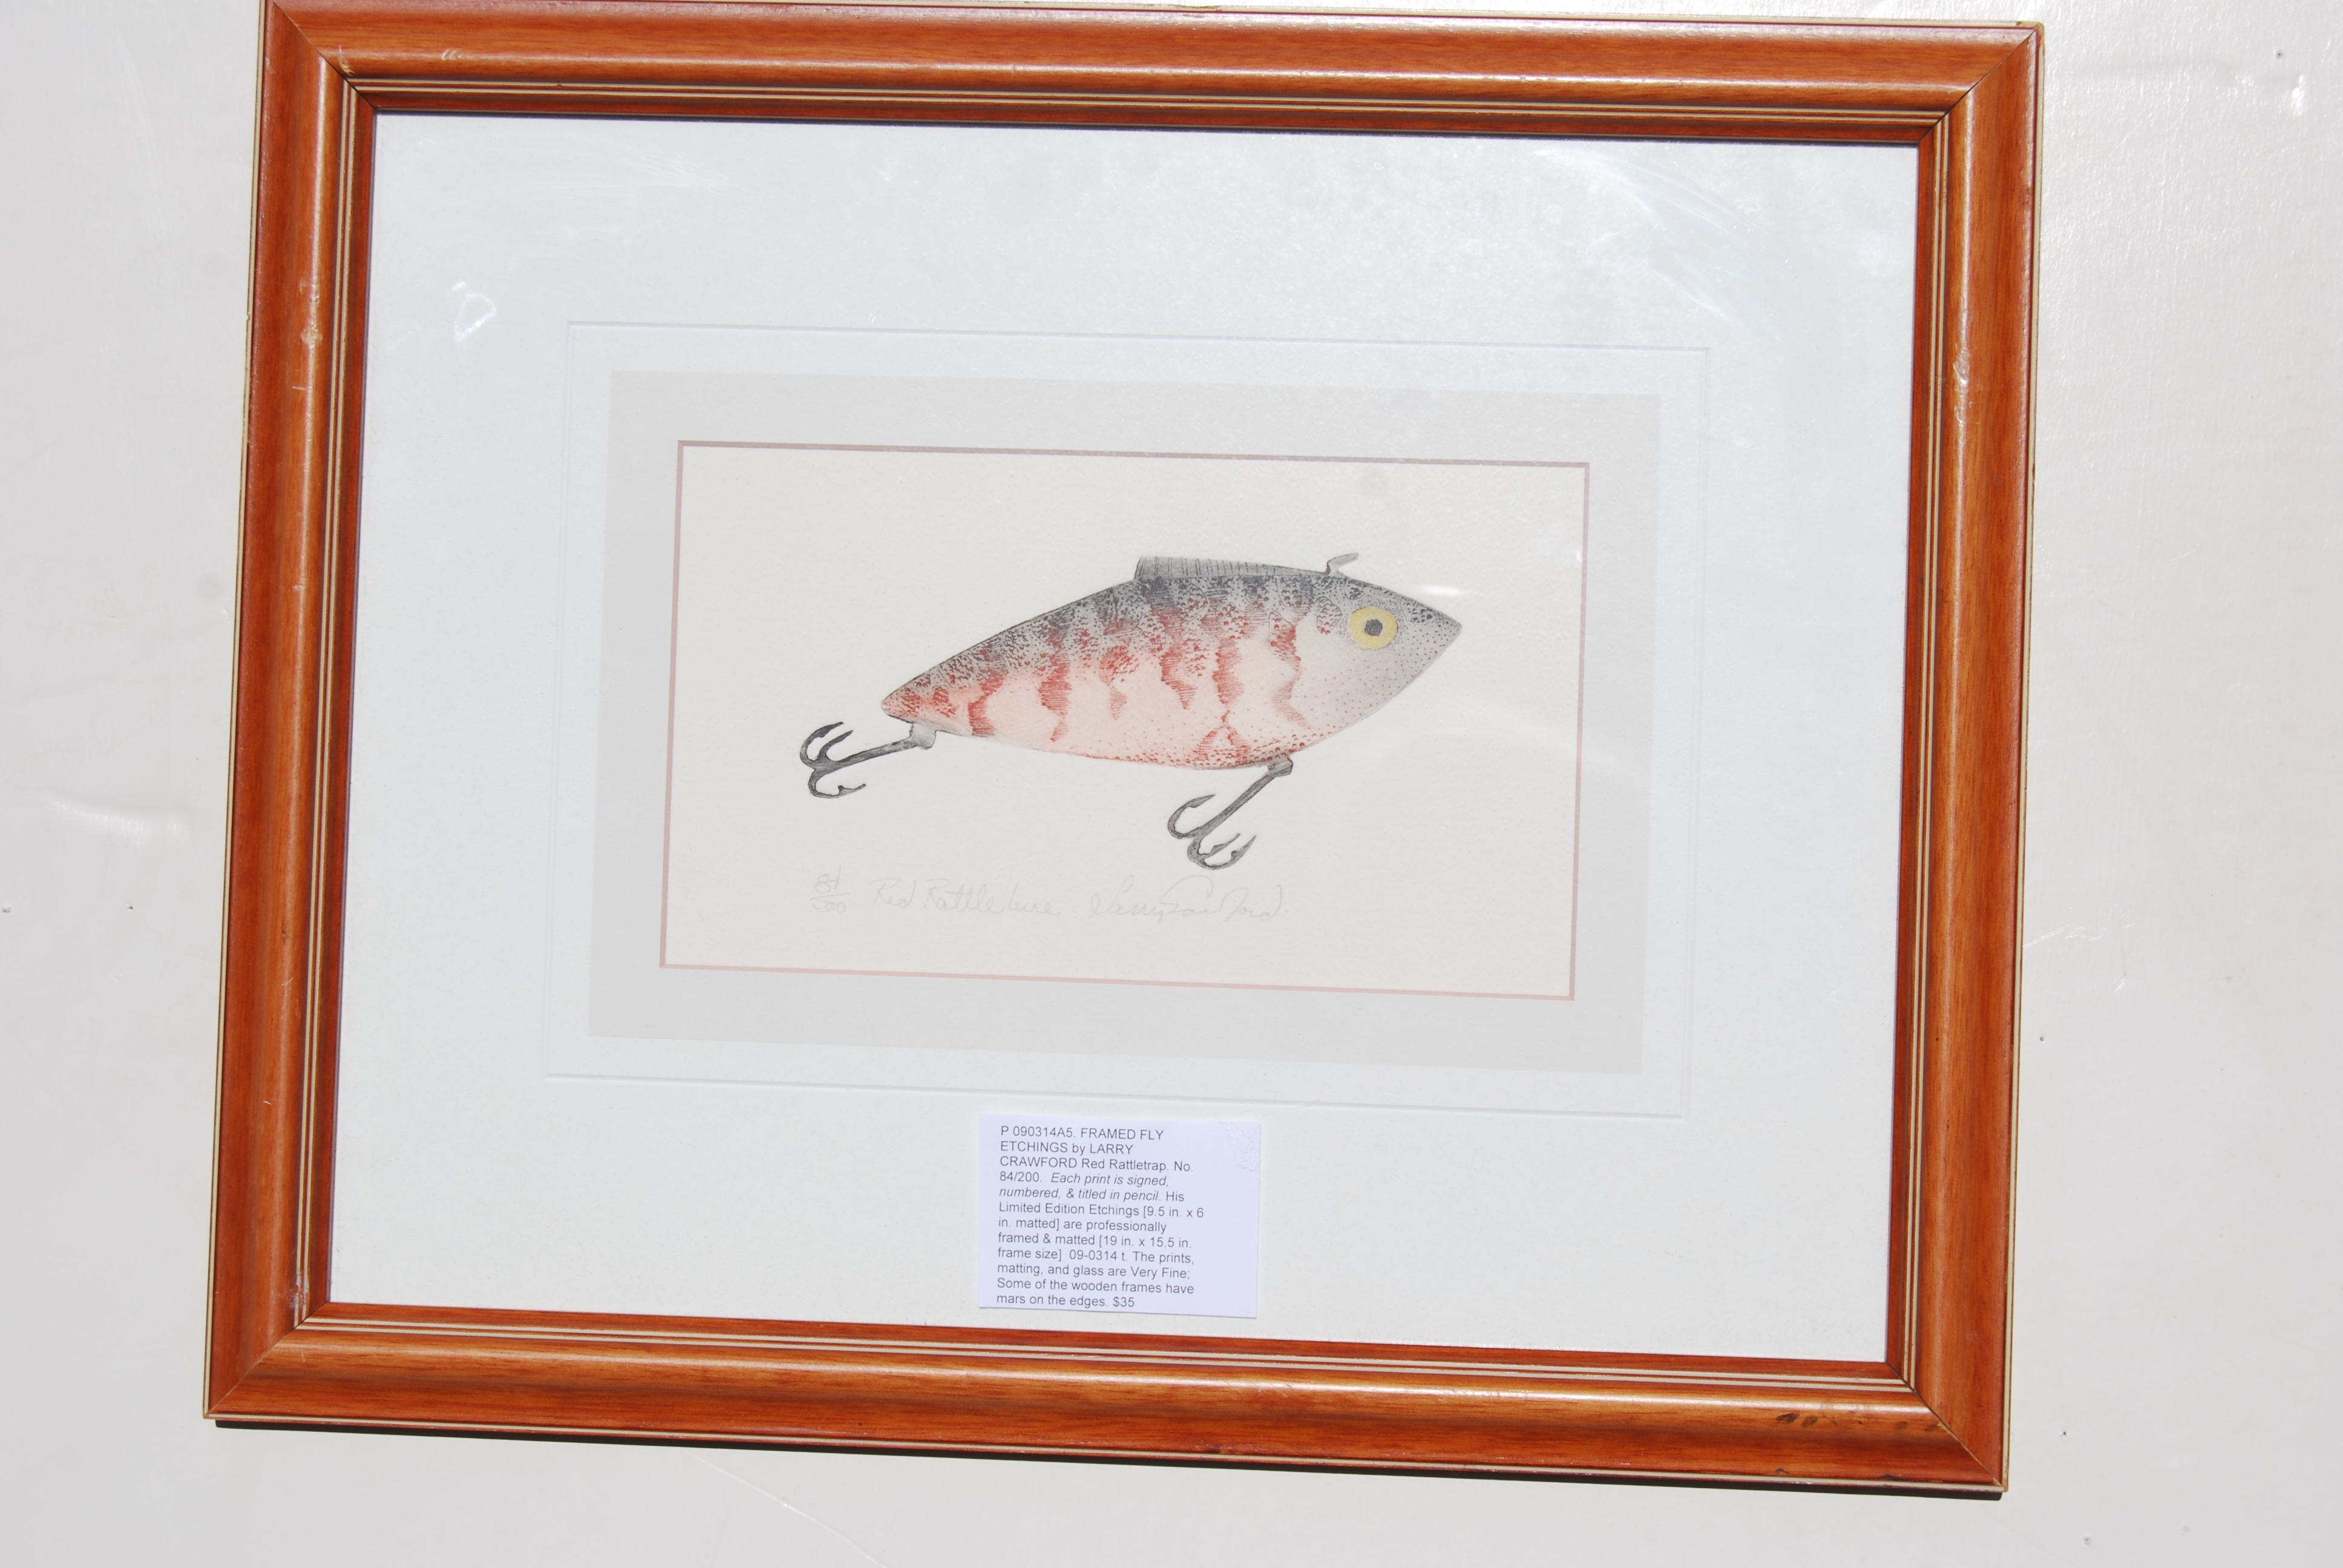 Image for FRAMED FLY ETCHINGS by LARRY CRAWFORD Red Rattletrap.